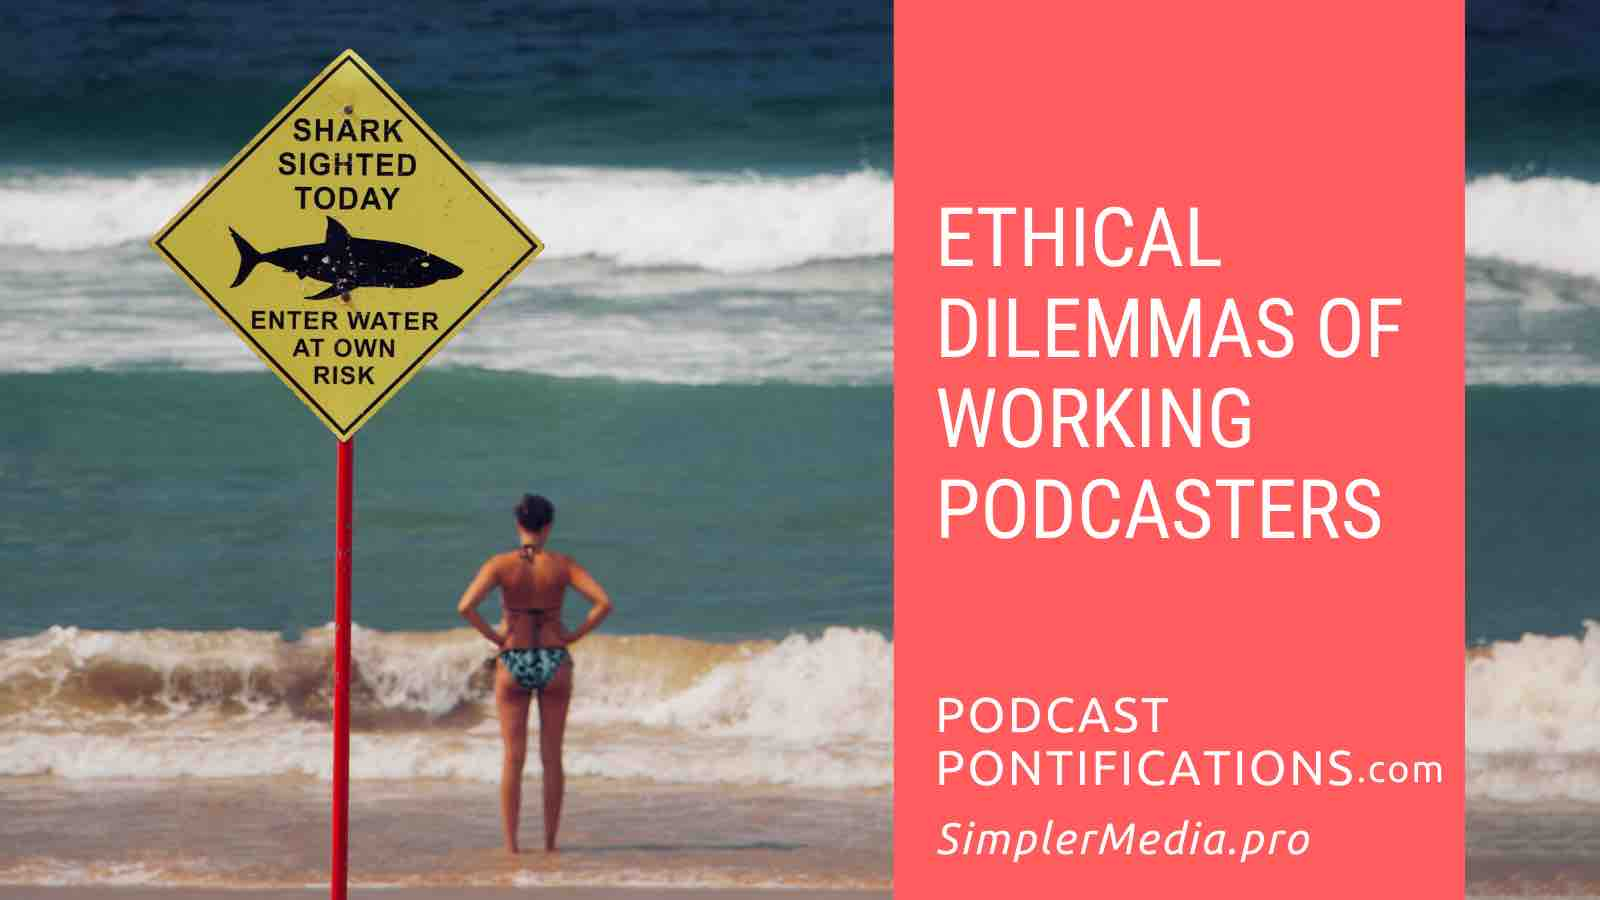 Ethical Dilemmas Of Working Podcasters